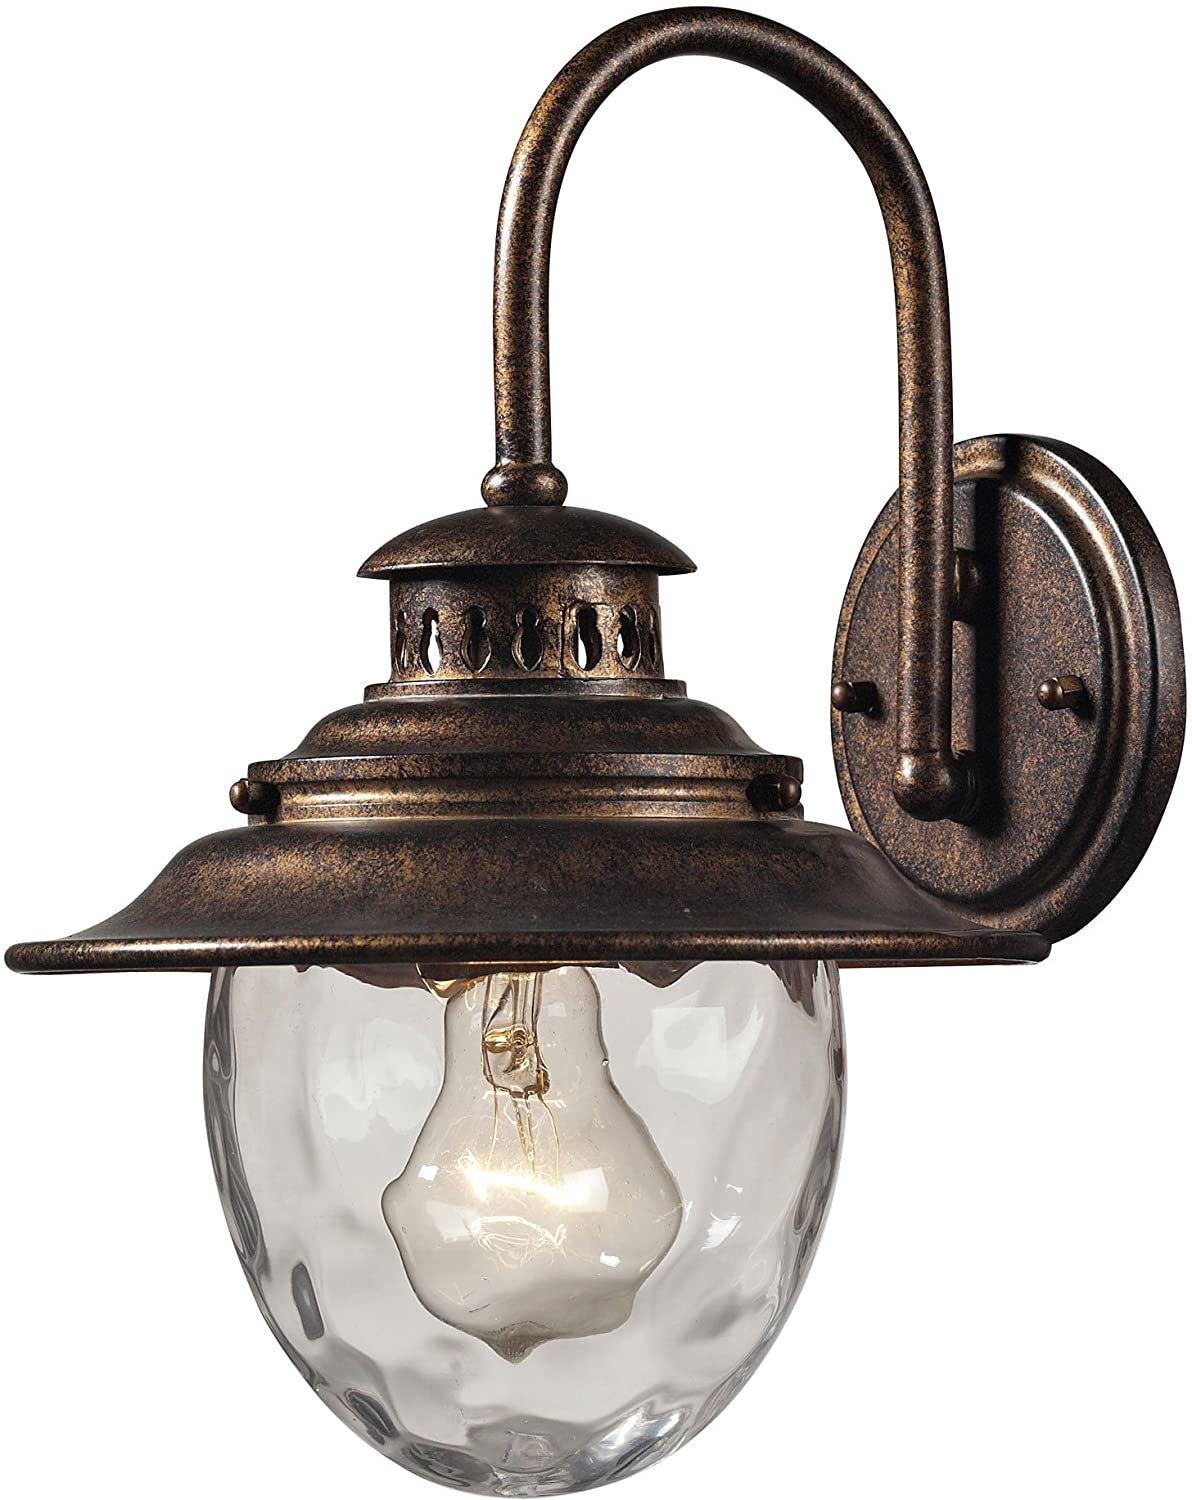 elk 8 by 13inch searsport 1light outdoor wall sconce with water glass diffuser weathered charcoal finish wall porch lights amazoncom